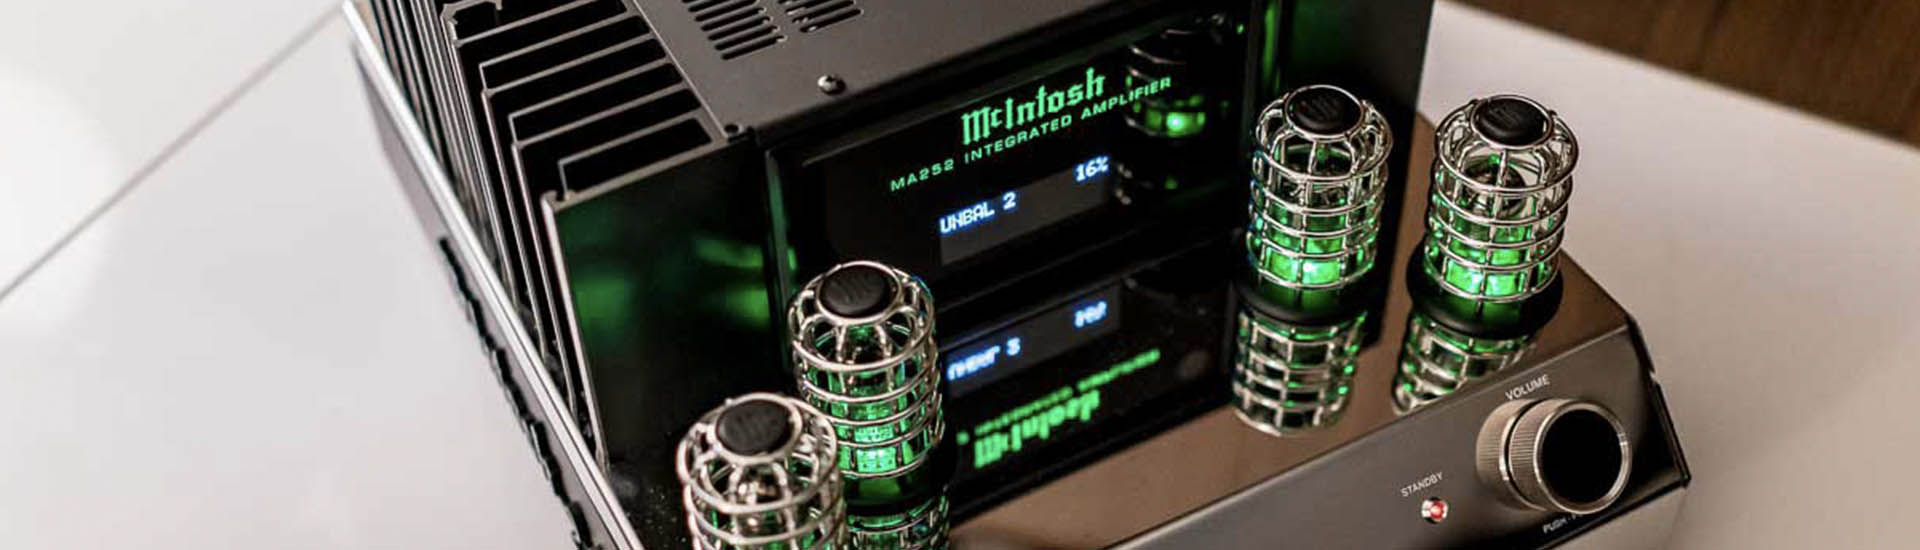 McIntosh MA252 Review : Hybrid Integrated Amp   World Wide Stereo